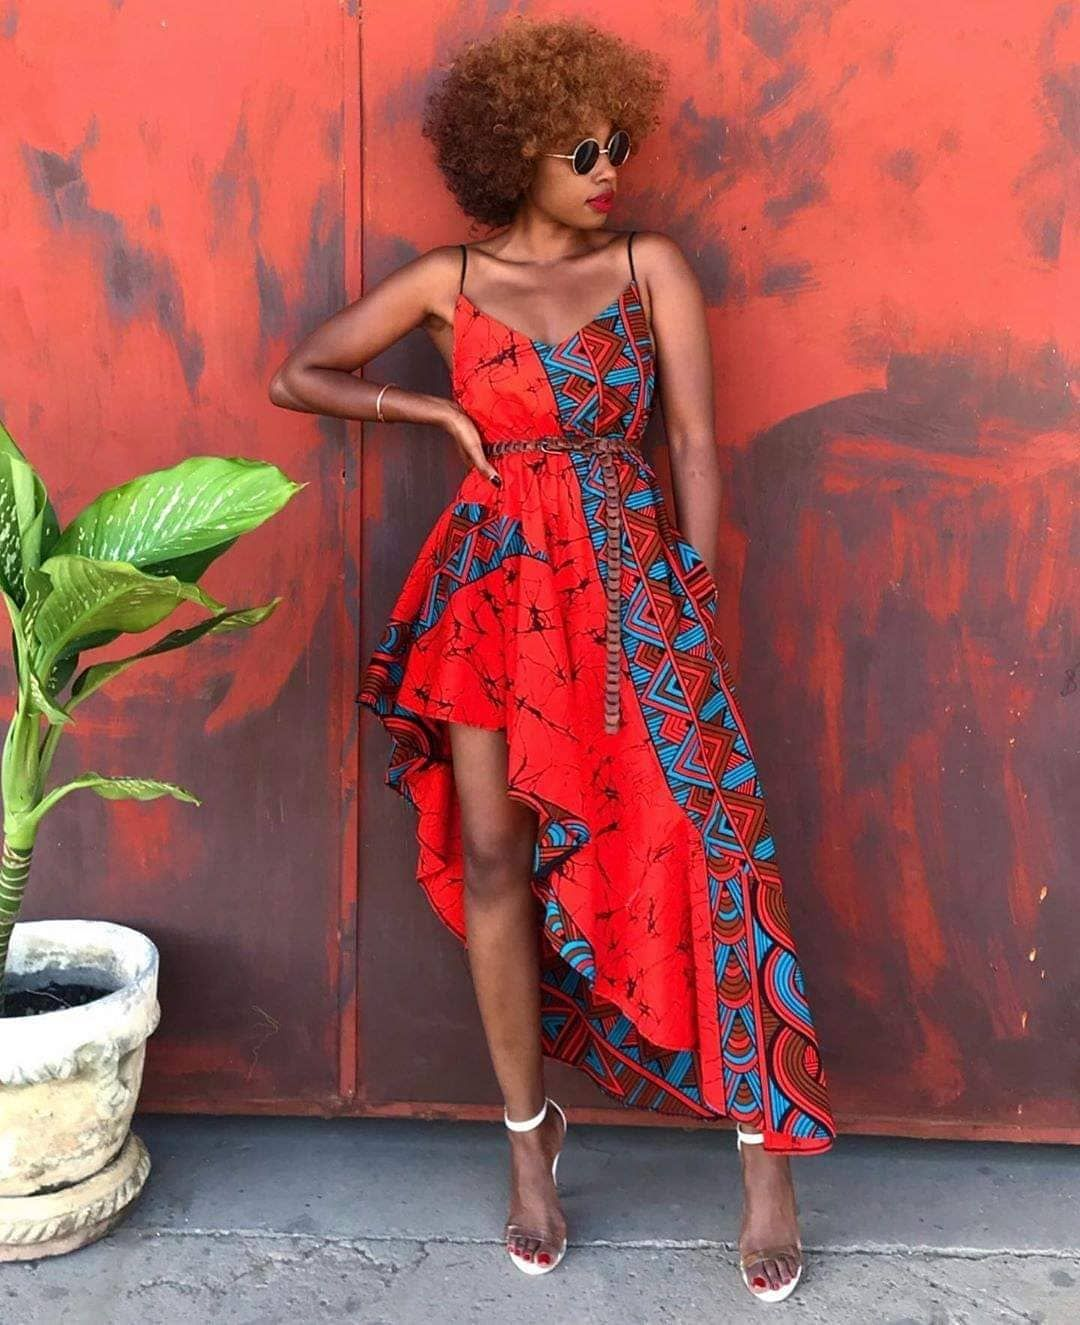 """African Fashion Wear on Instagram: """"We call this mood: Lady in Red 2.0 ��� what is your opinion on her dress? � Brand: @mangishidoll . . . #afw #mangishidoll…"""""""